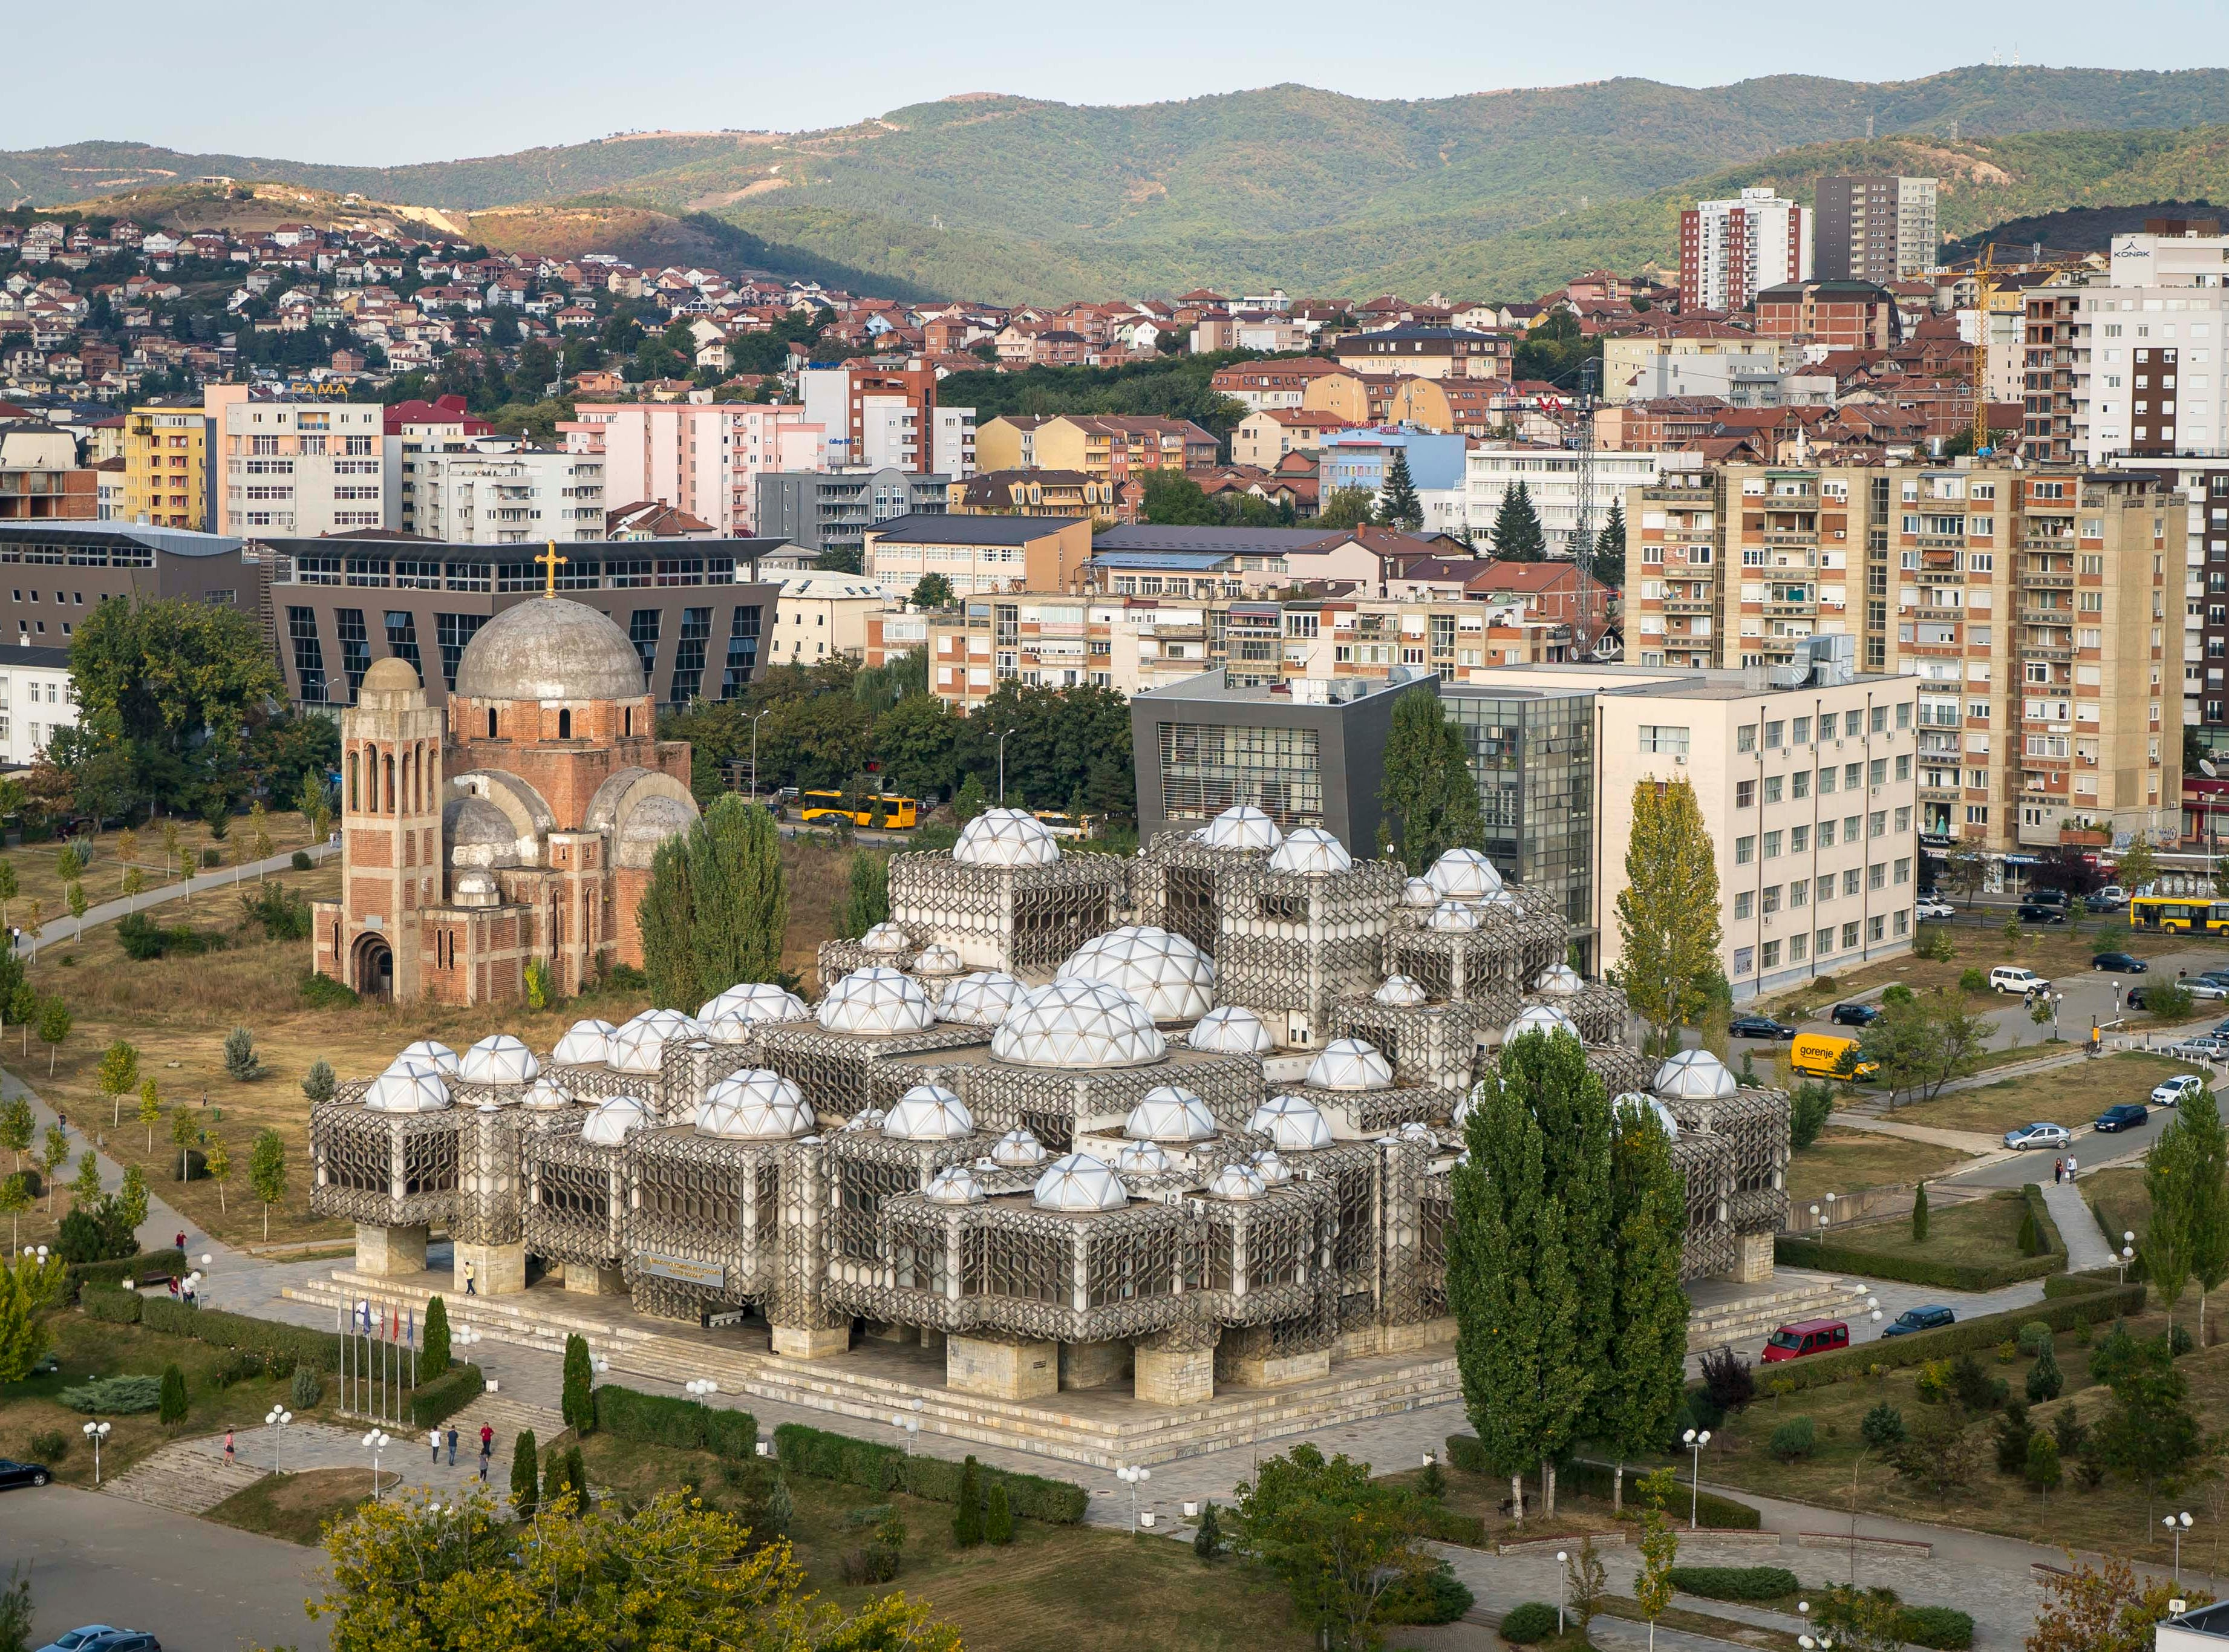 View of the National Library of Kosovo and the unfinished Church of Christ the Saviour, a Serbian orthodox christian church in Pristina, Kosovo, Tuesday, Sept. 18, 2018.